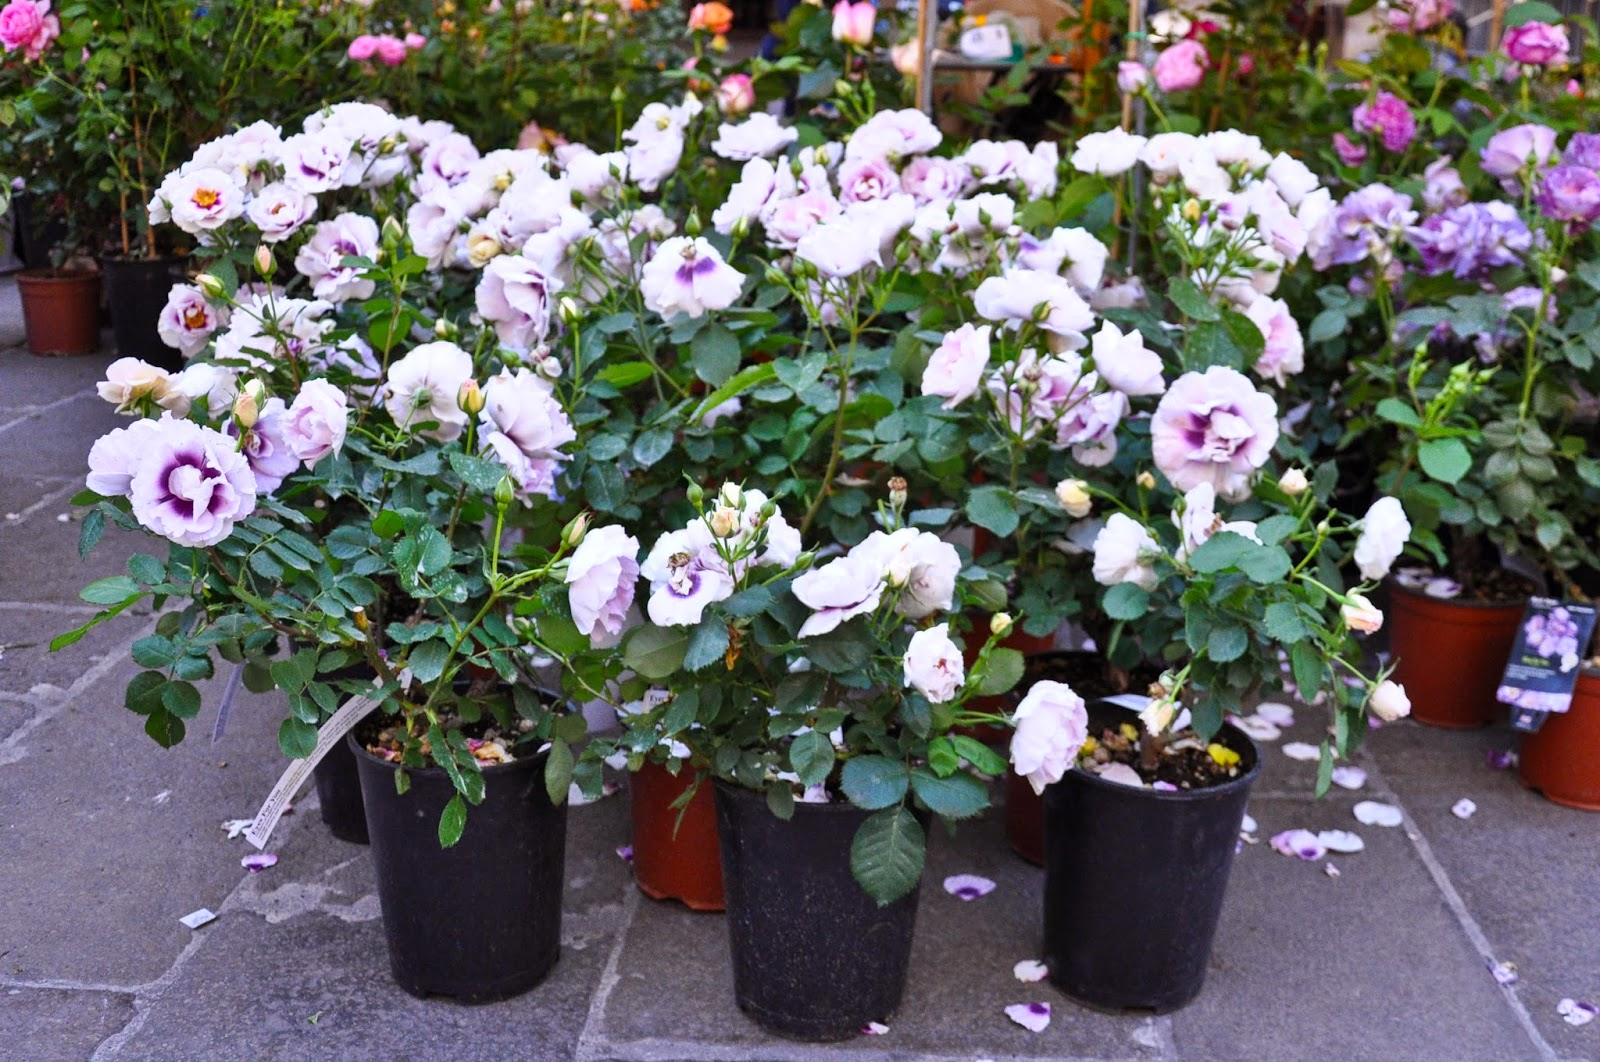 Potted roses, 7th Edition of 'Fiori, colori, e...' - Floriculture market show, Vicenza, Italy